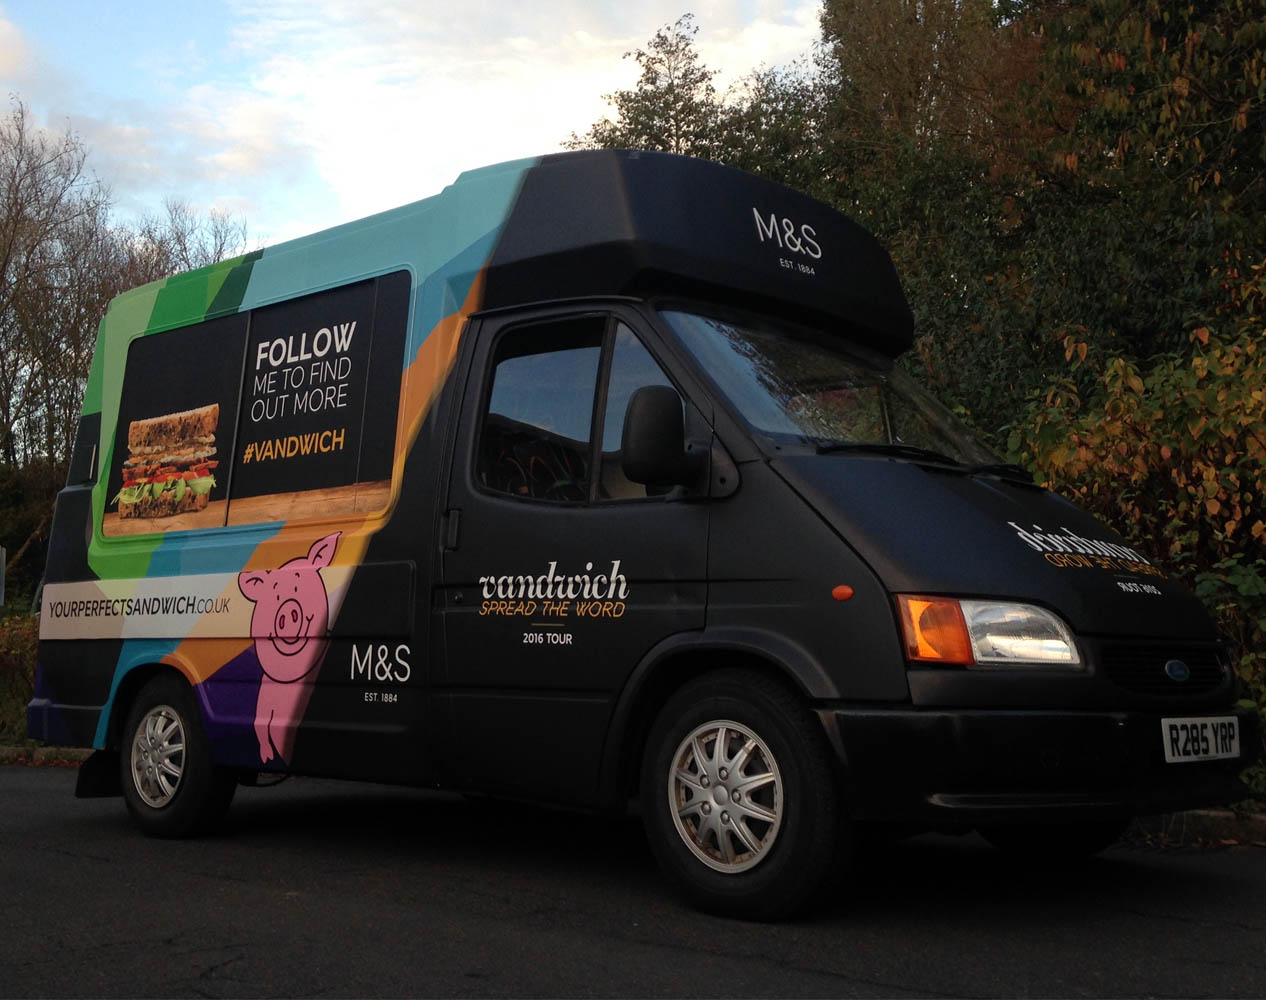 branded ice cream vans for hire